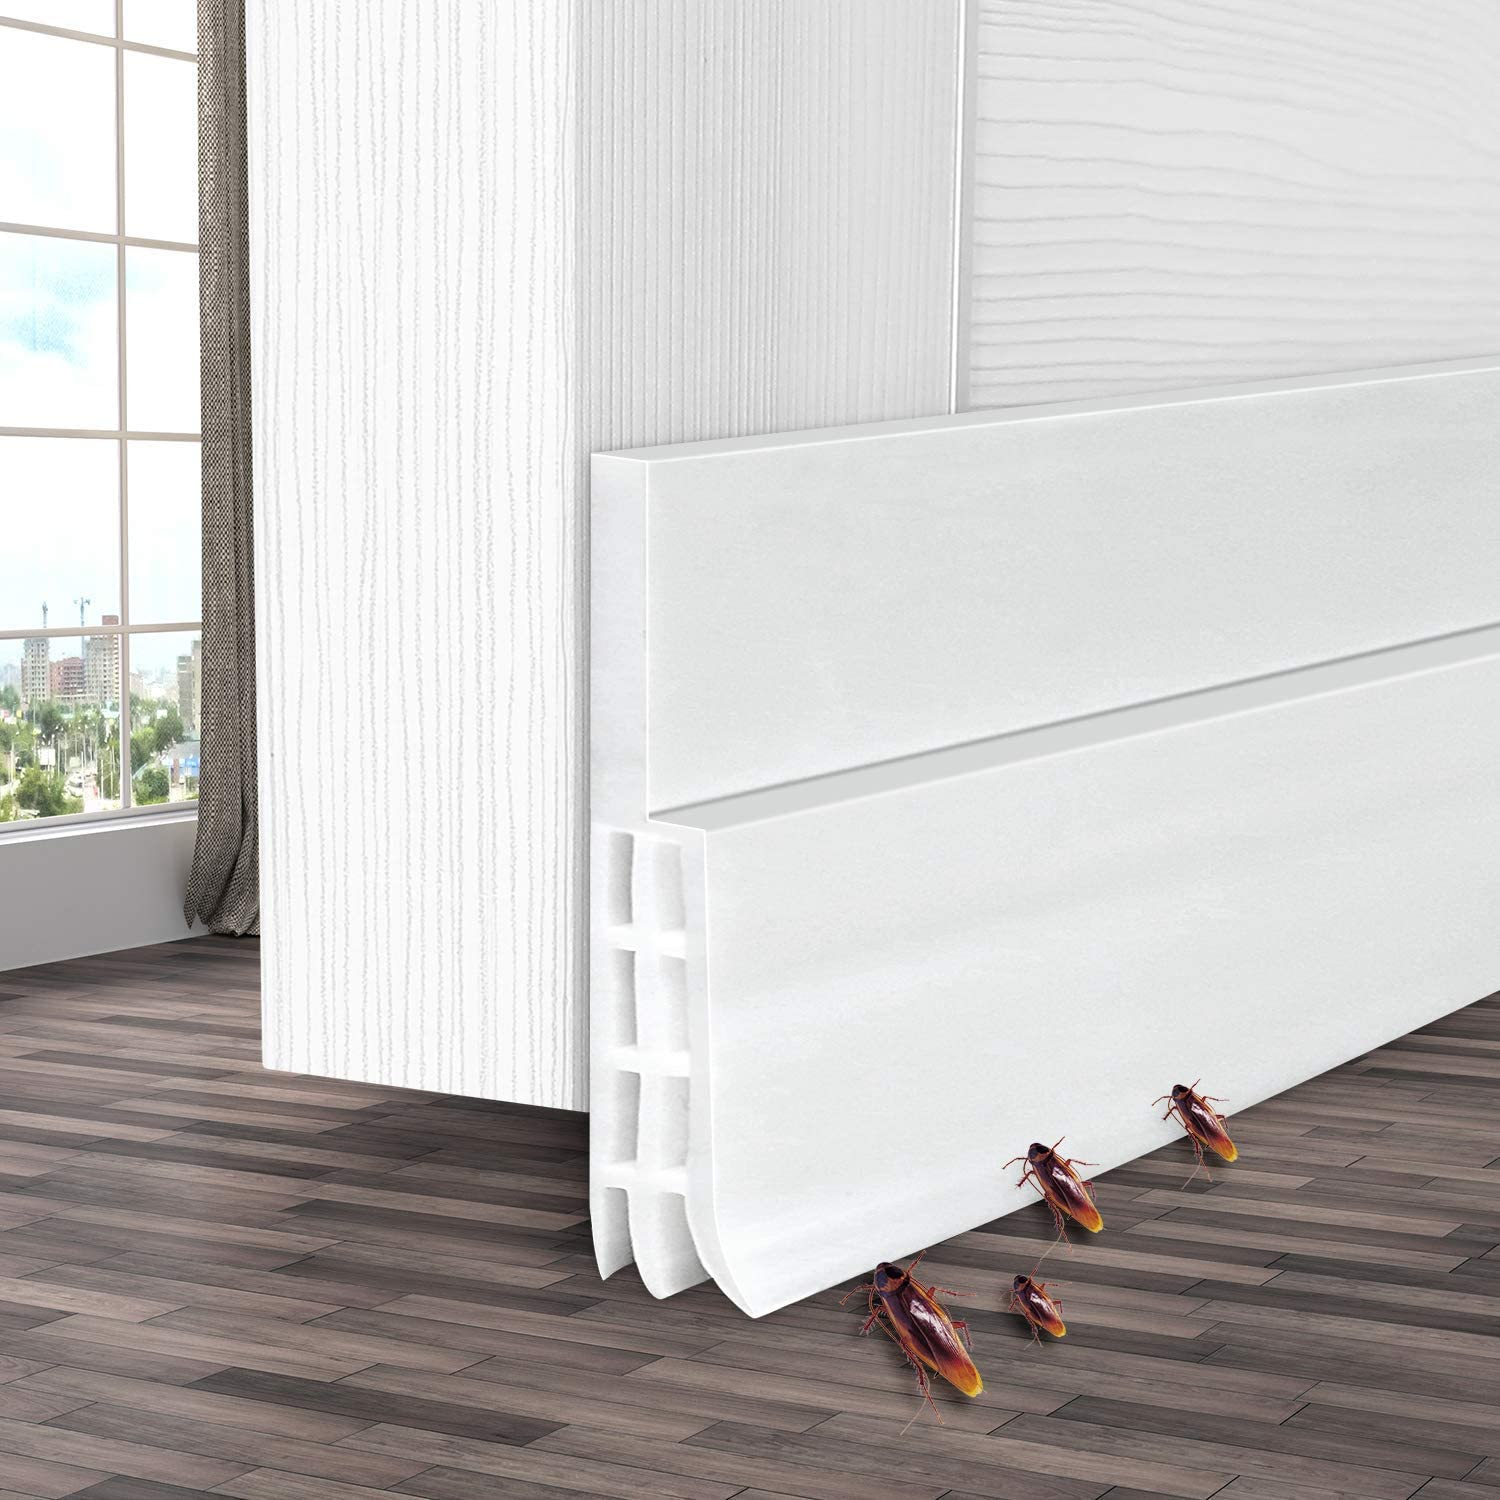 Under Door Draft Blocker Door Seal Strip 2 W x 39 L Sound Proof Door Strip Door Sweep Weather Stripping Noise Stopper White